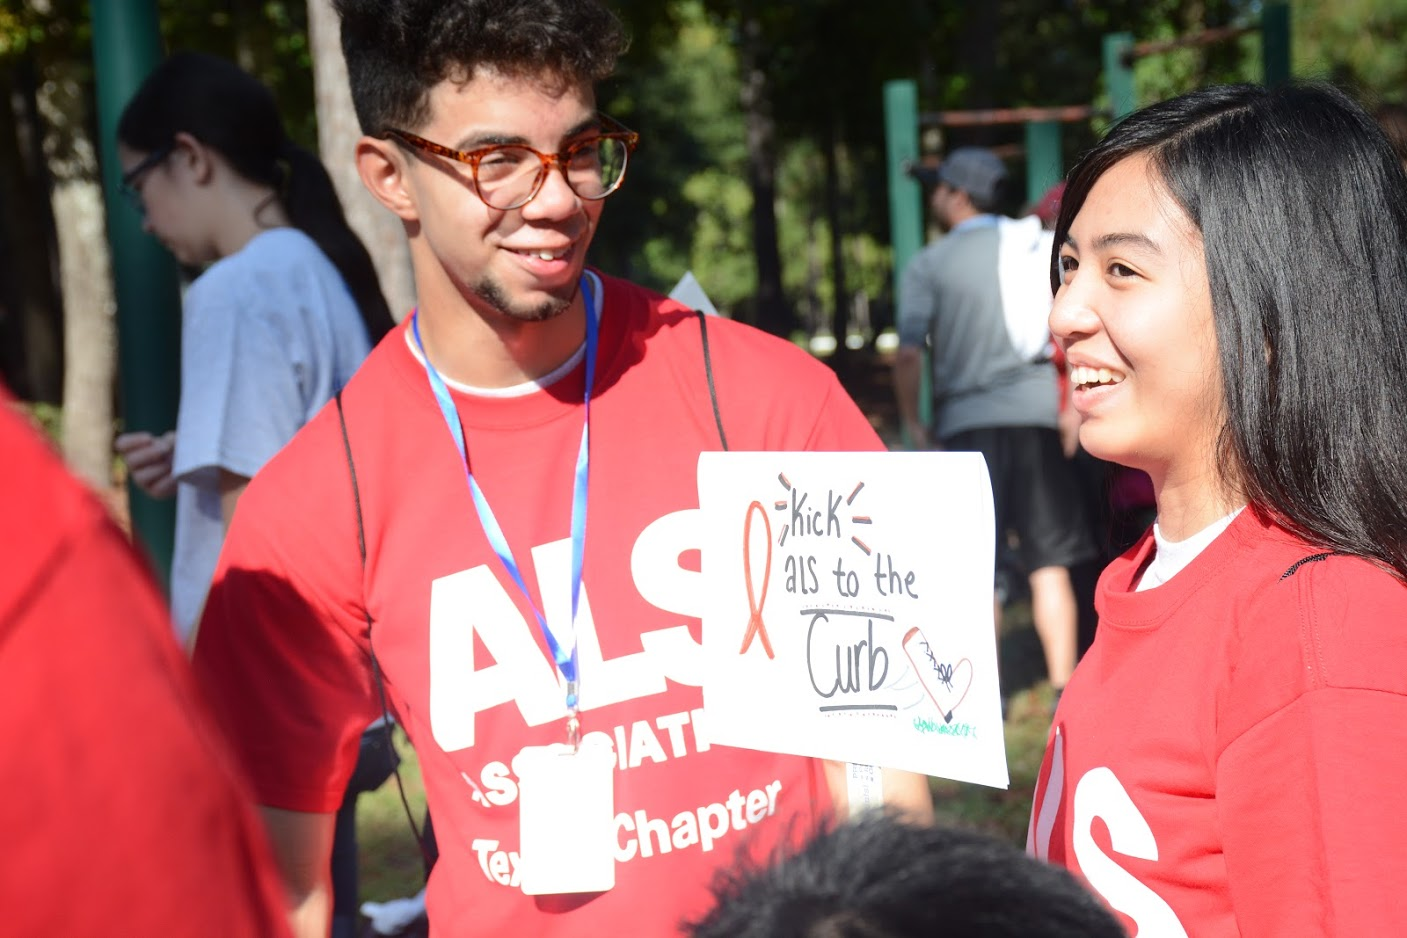 Students volunteer at the ALS walk in the Woodlands Saturday morning as part of Klein Serves.